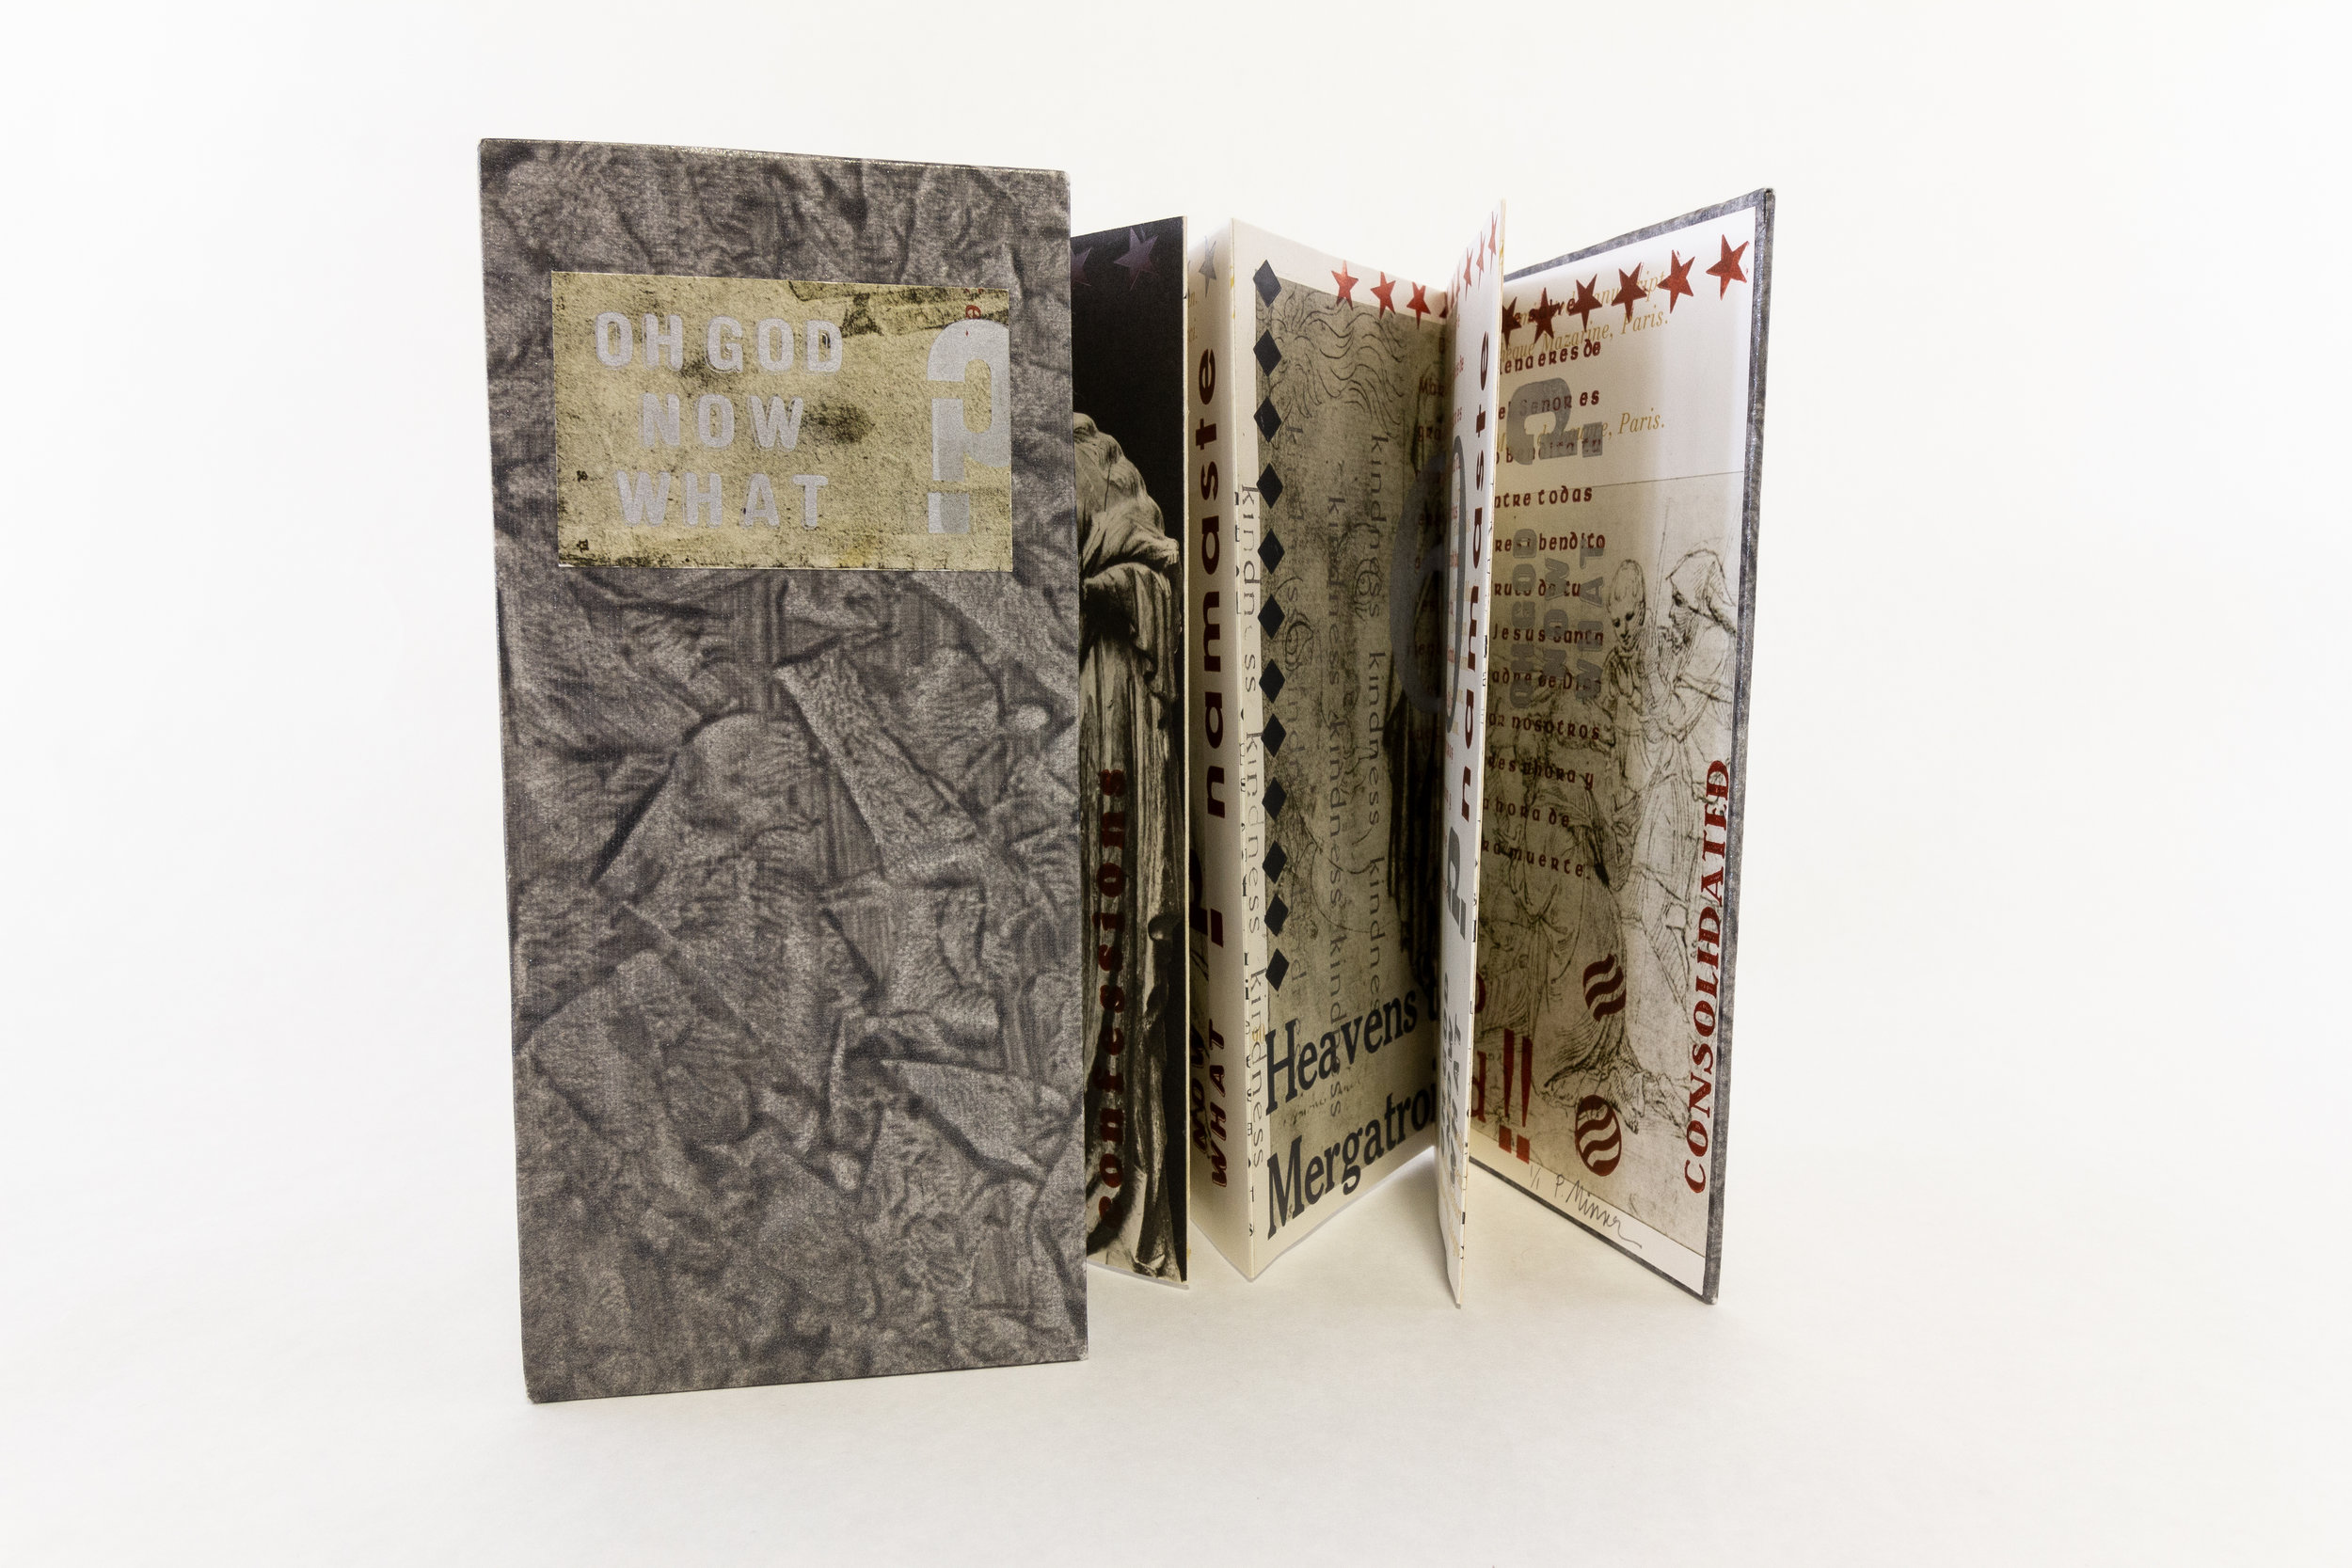 """Pauline Minser, """"Oh god now what?,"""" Bookarts, Accordion fold , collage and letterpress, 2017, $350, Santa Rosa, CA"""